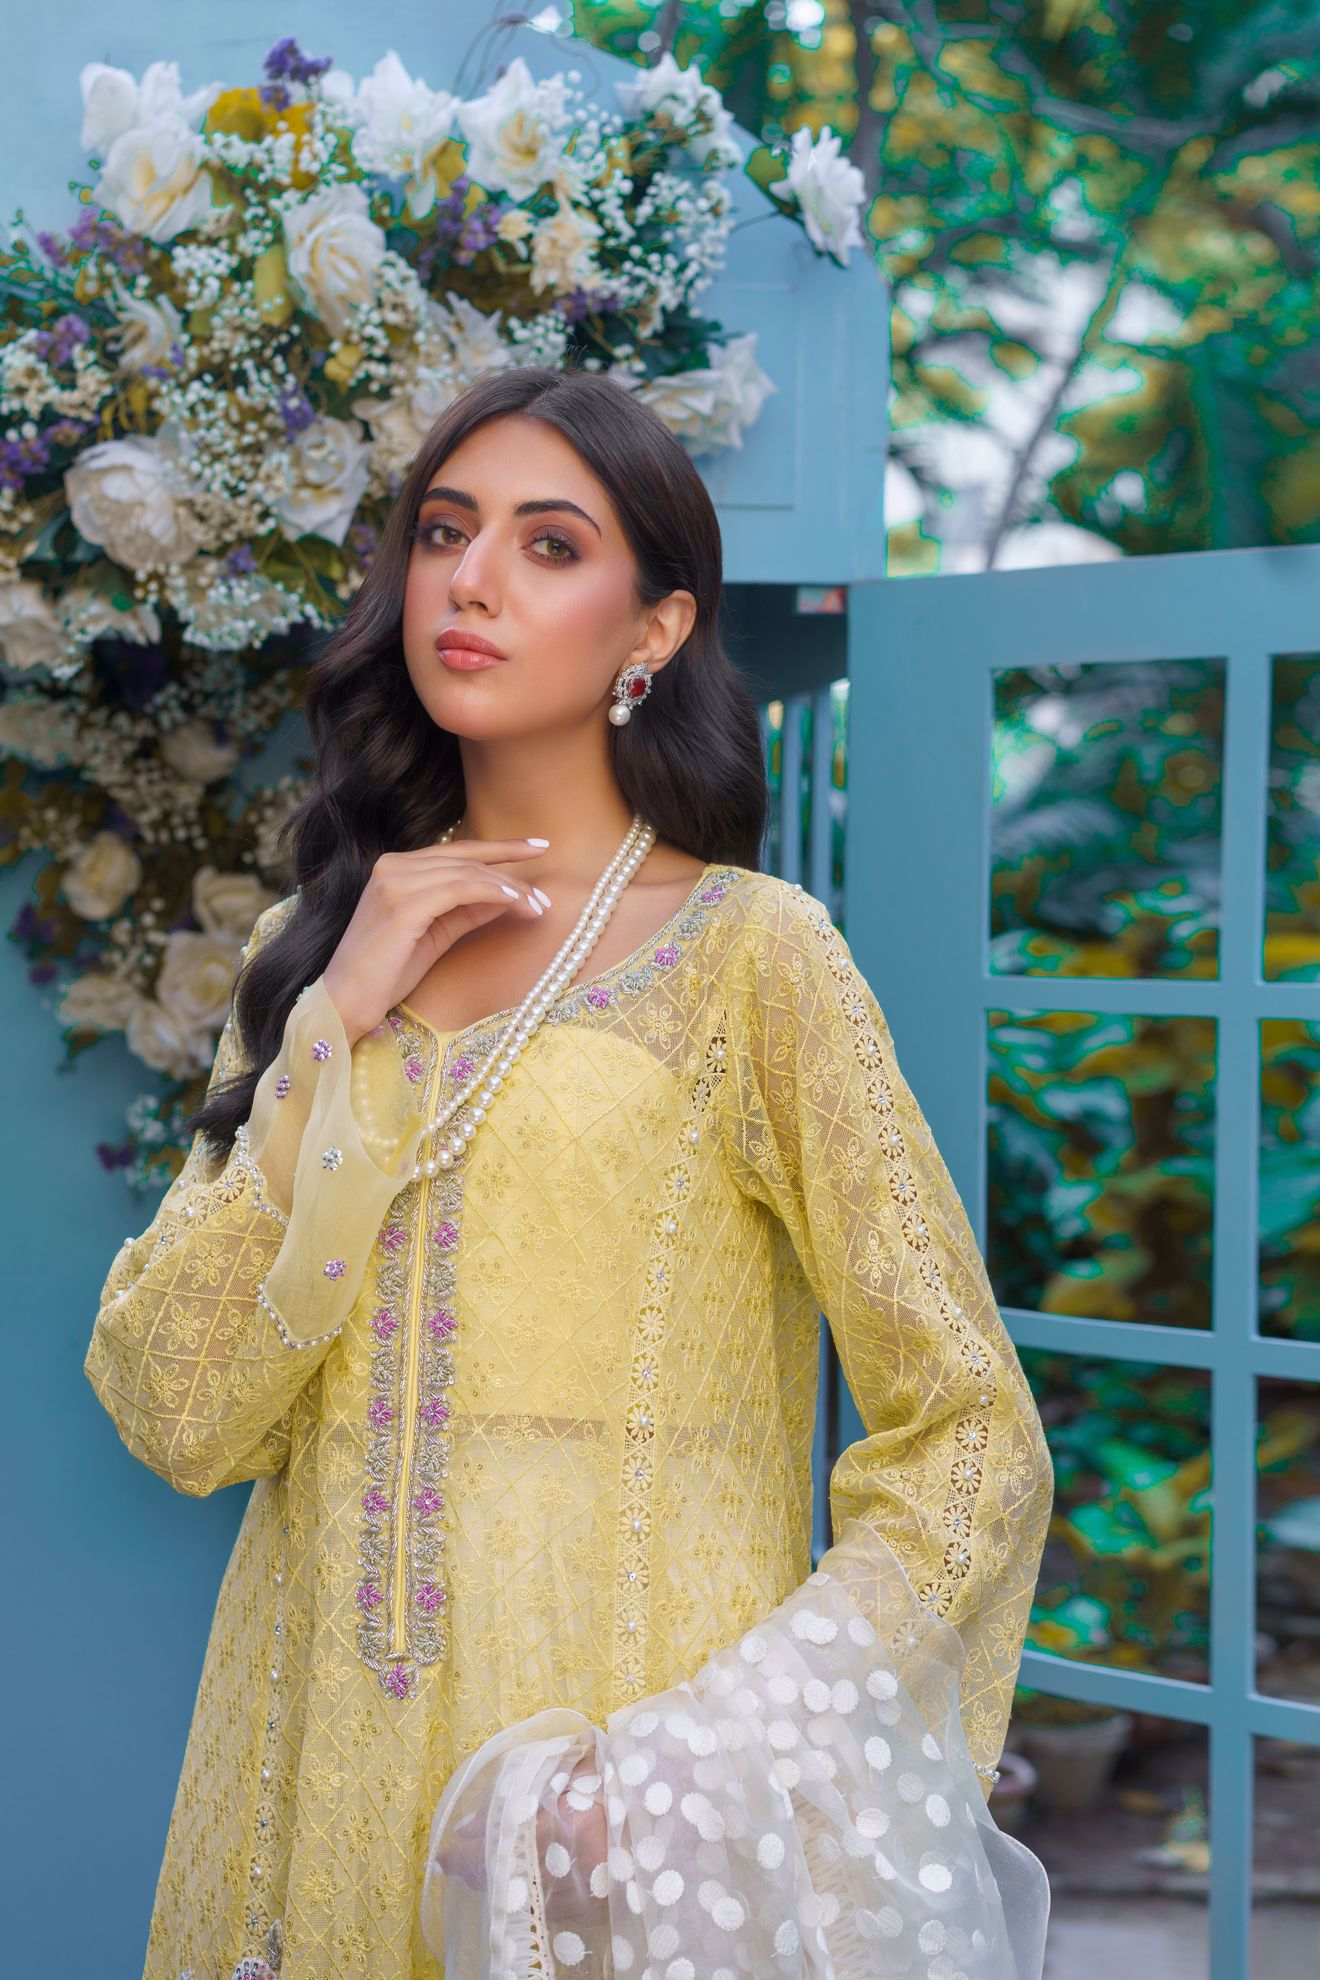 Picture of Liyana, Ice Yellow Chikankari Shirt